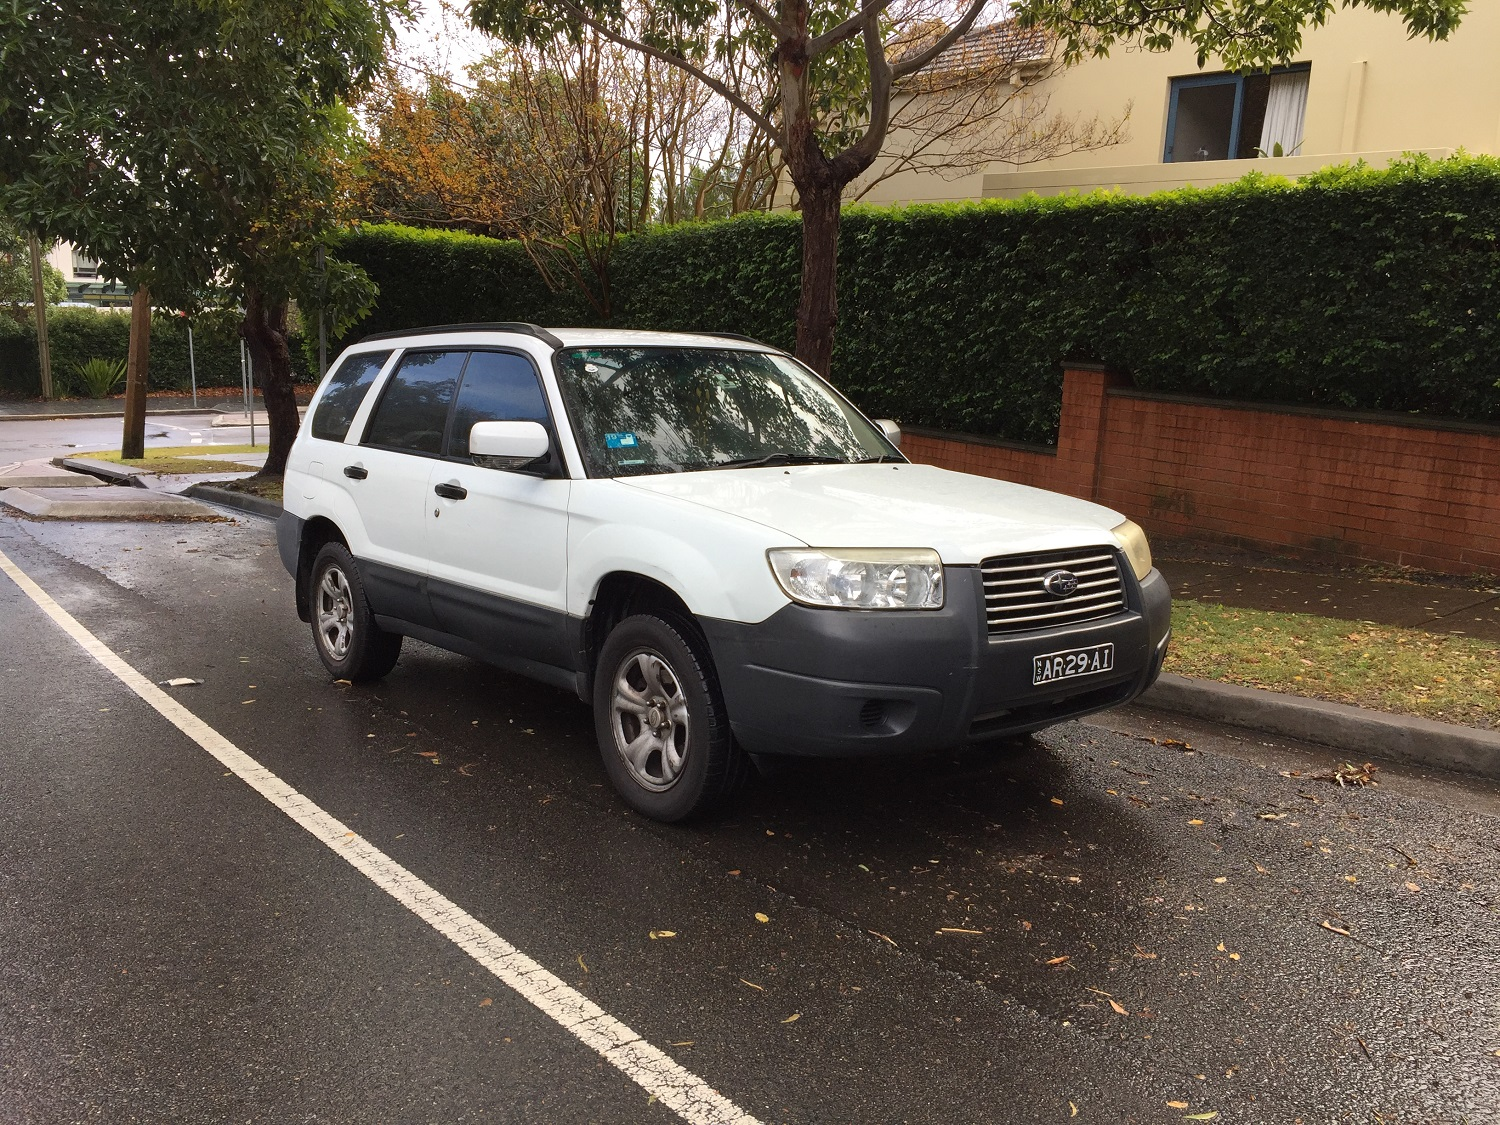 Picture of Luke's 2005 Subaru Forrester